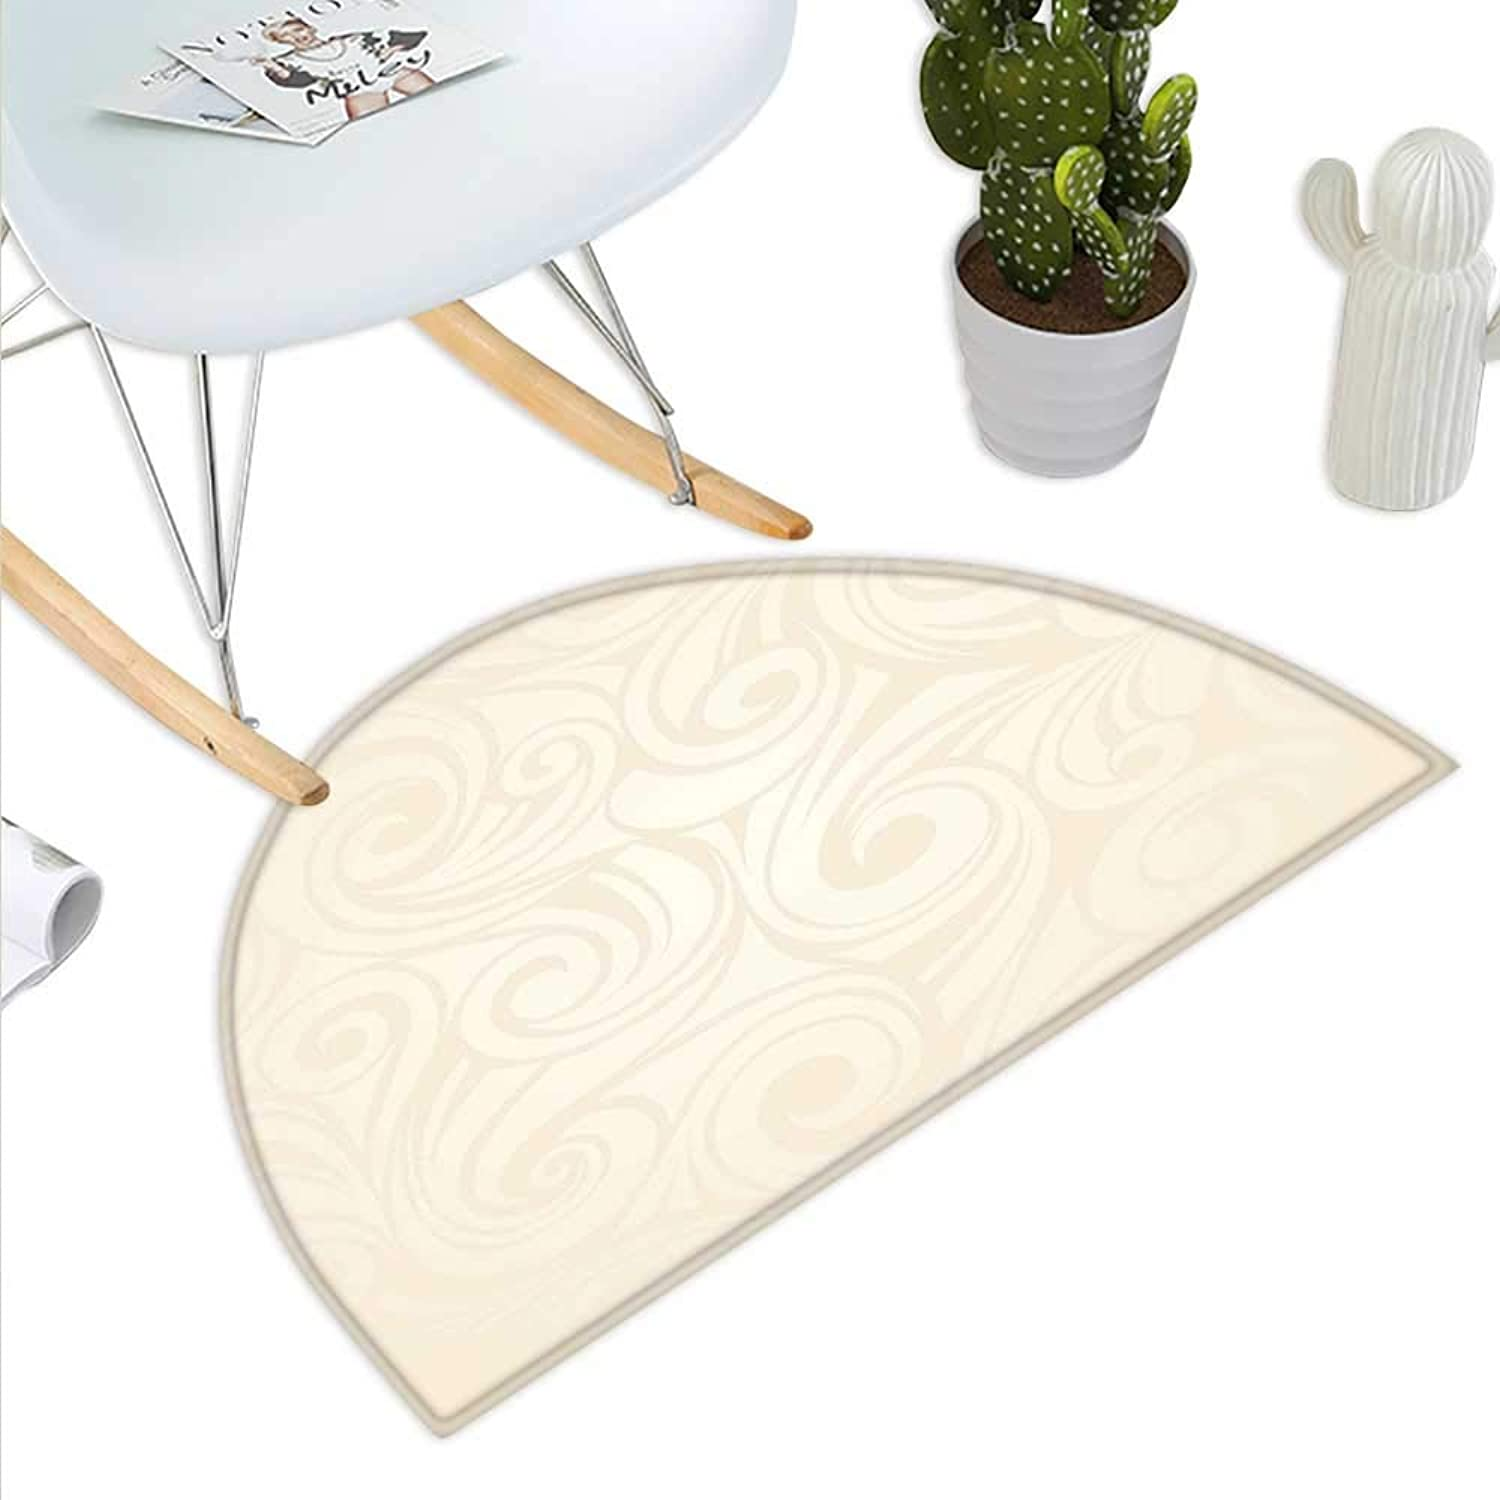 Ivory Semicircle Doormat Victorian Curved Renaissance Style Leaves Branches Artistic Classic Petals Illustration Halfmoon doormats H 43.3  xD 64.9  Cream